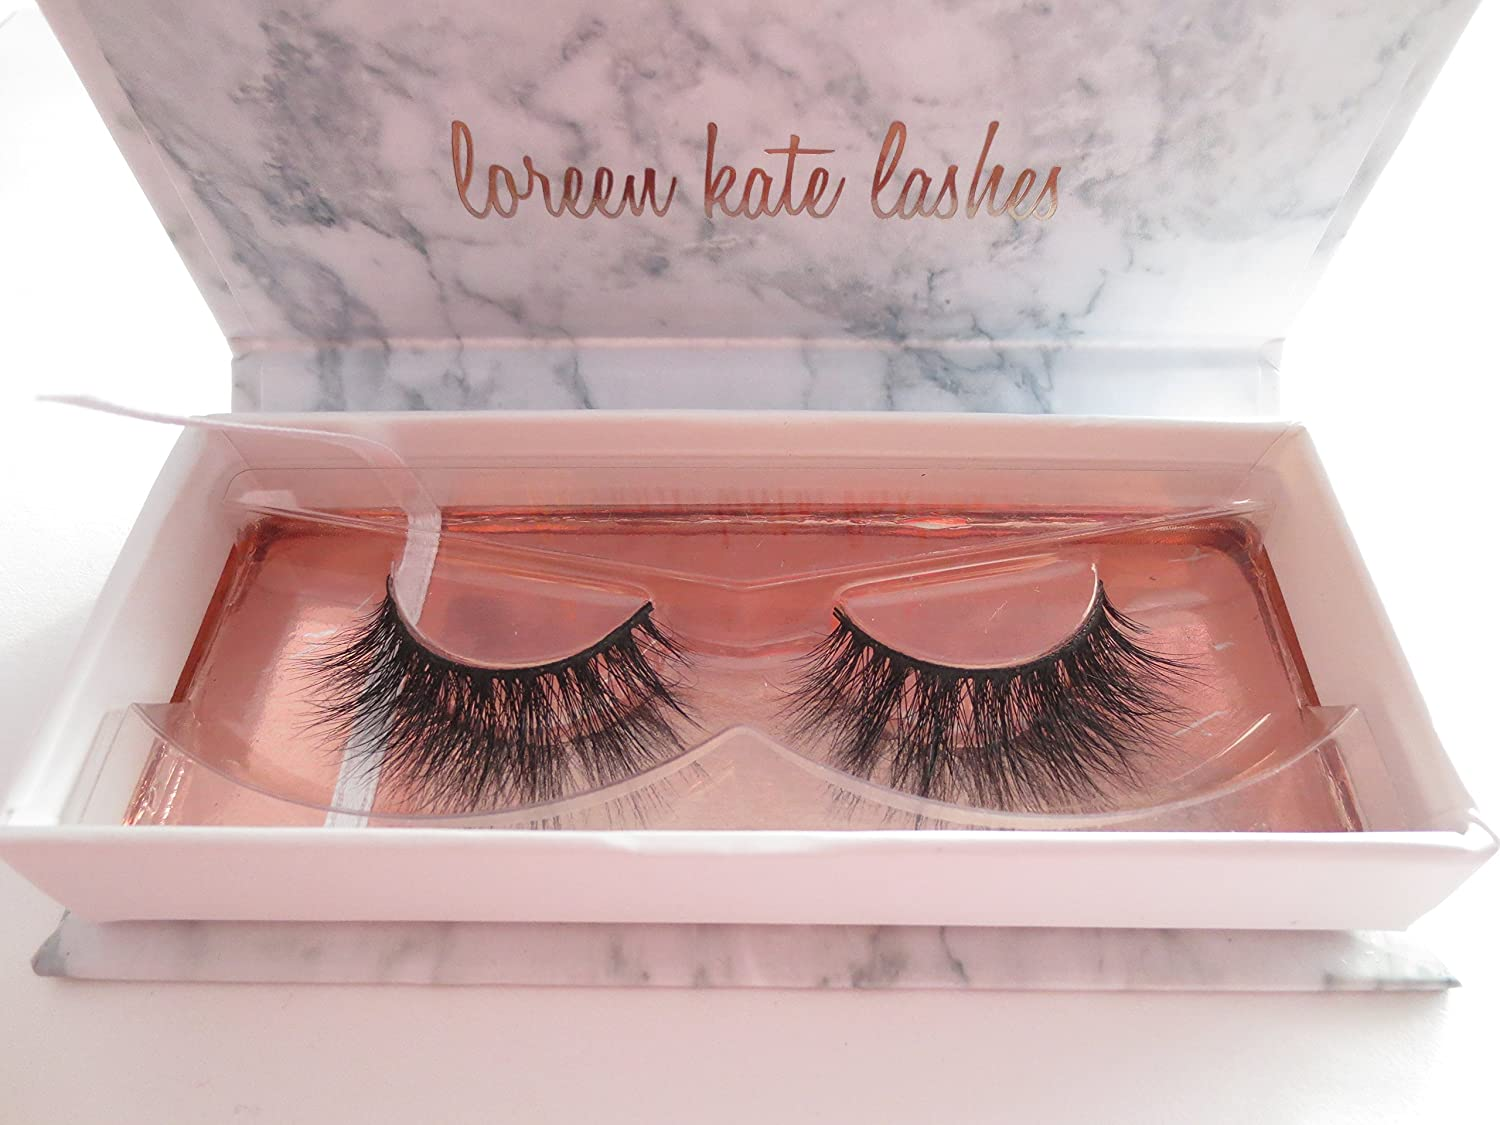 3D Mink False Eyelashes - Cruelty Free - Handmade - Soft, Light, Comfortable & Reusable Strip False Lashes - 1 Pair Package (Bella) Loreen Kate Lashes